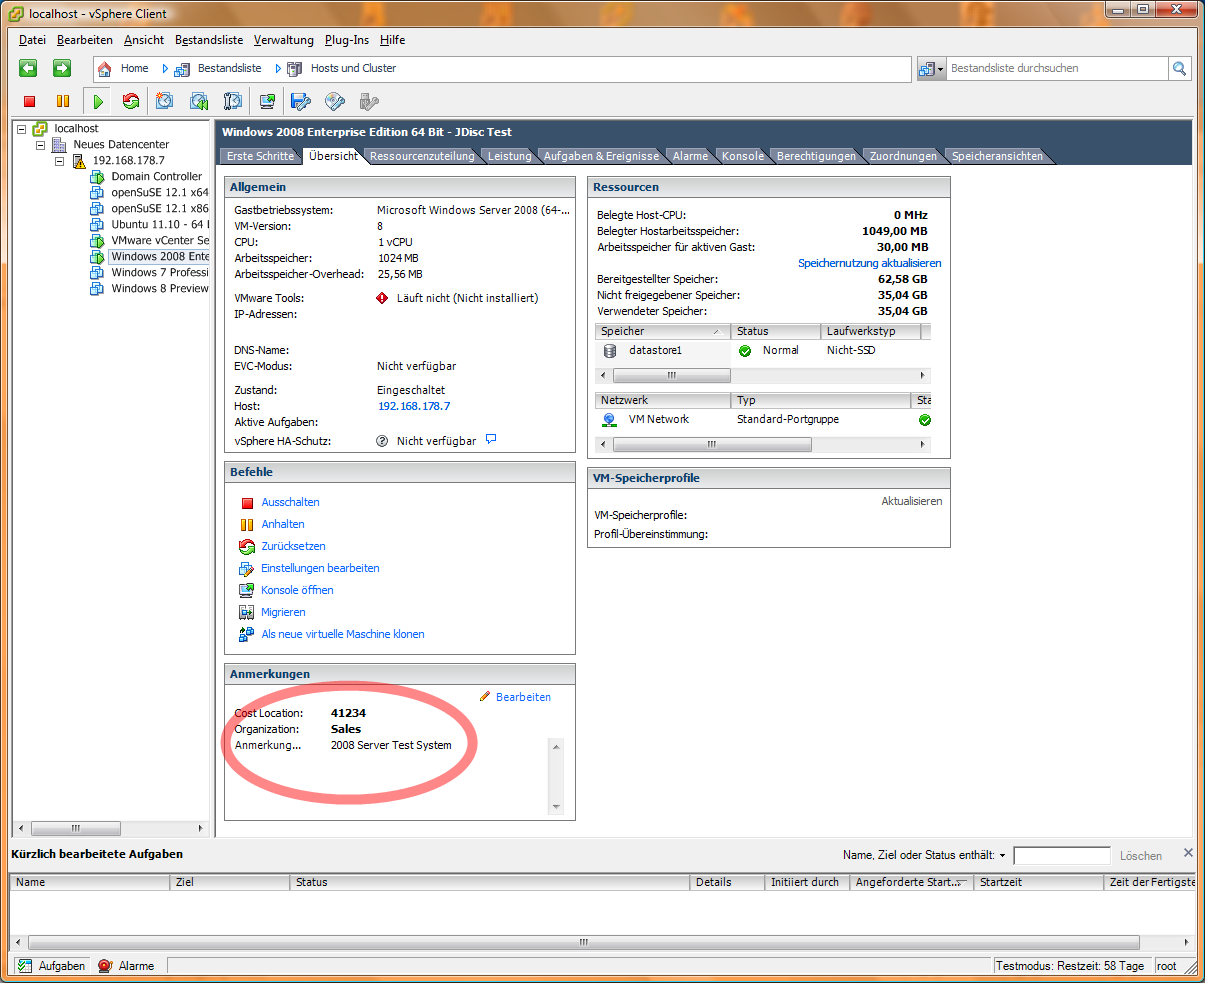 Custom Attributes within VMware's vCenter